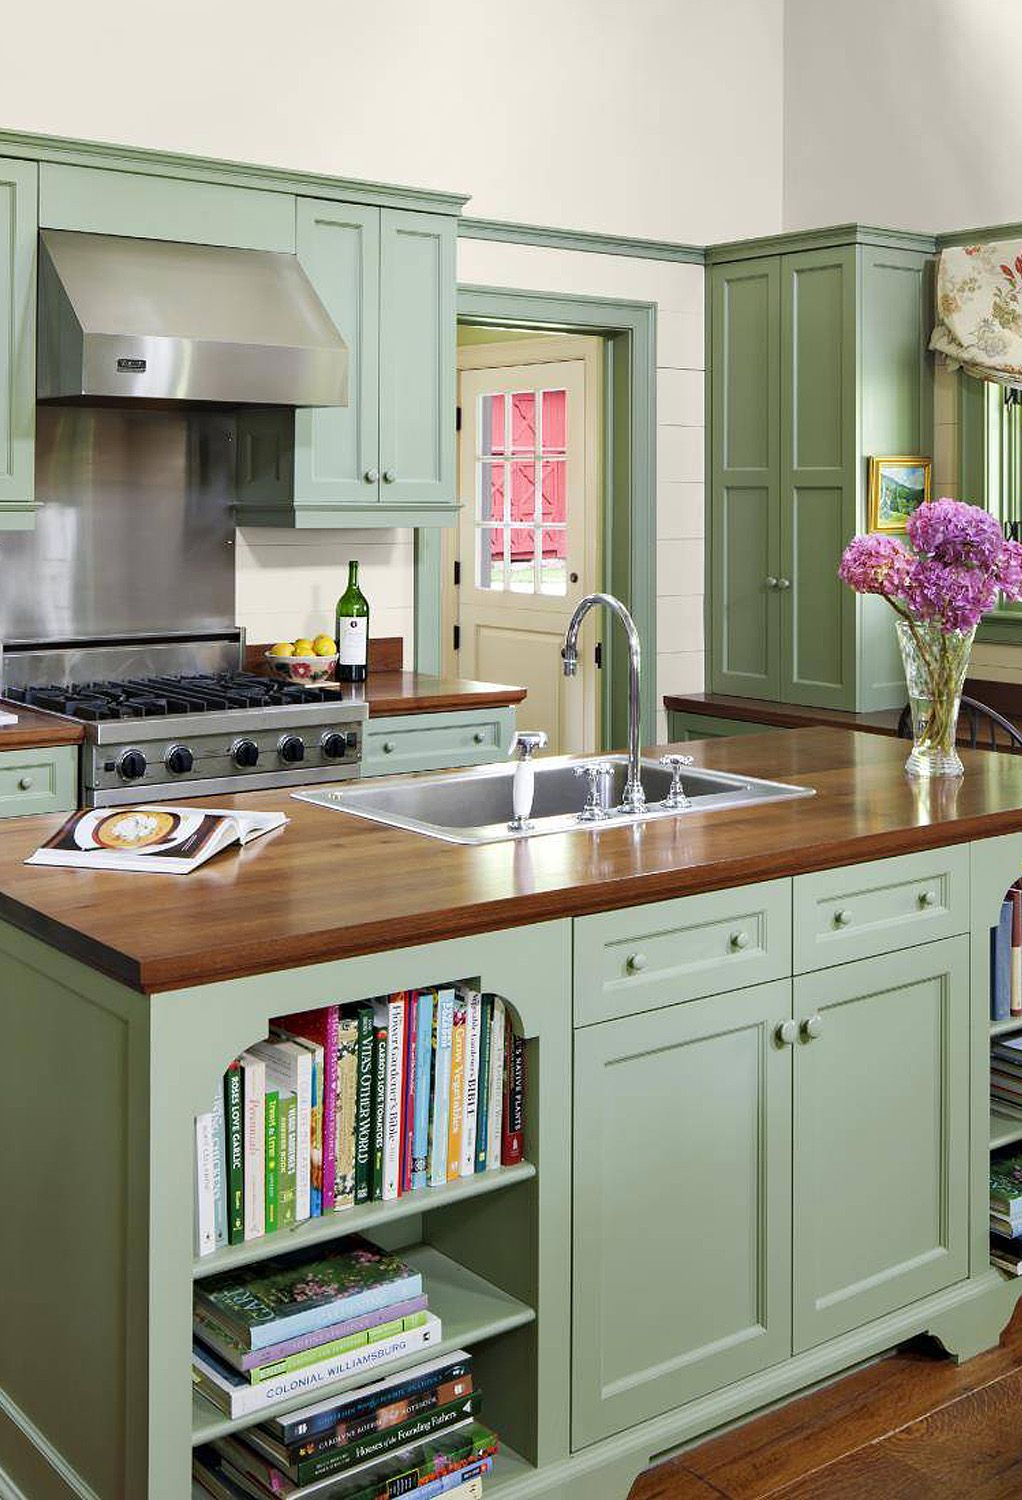 34 Top Green Kitchen Cabinets Good For Kitchen Get Ideas In 2020 Green Kitchen Cabinets Green Kitchen Distressed Kitchen